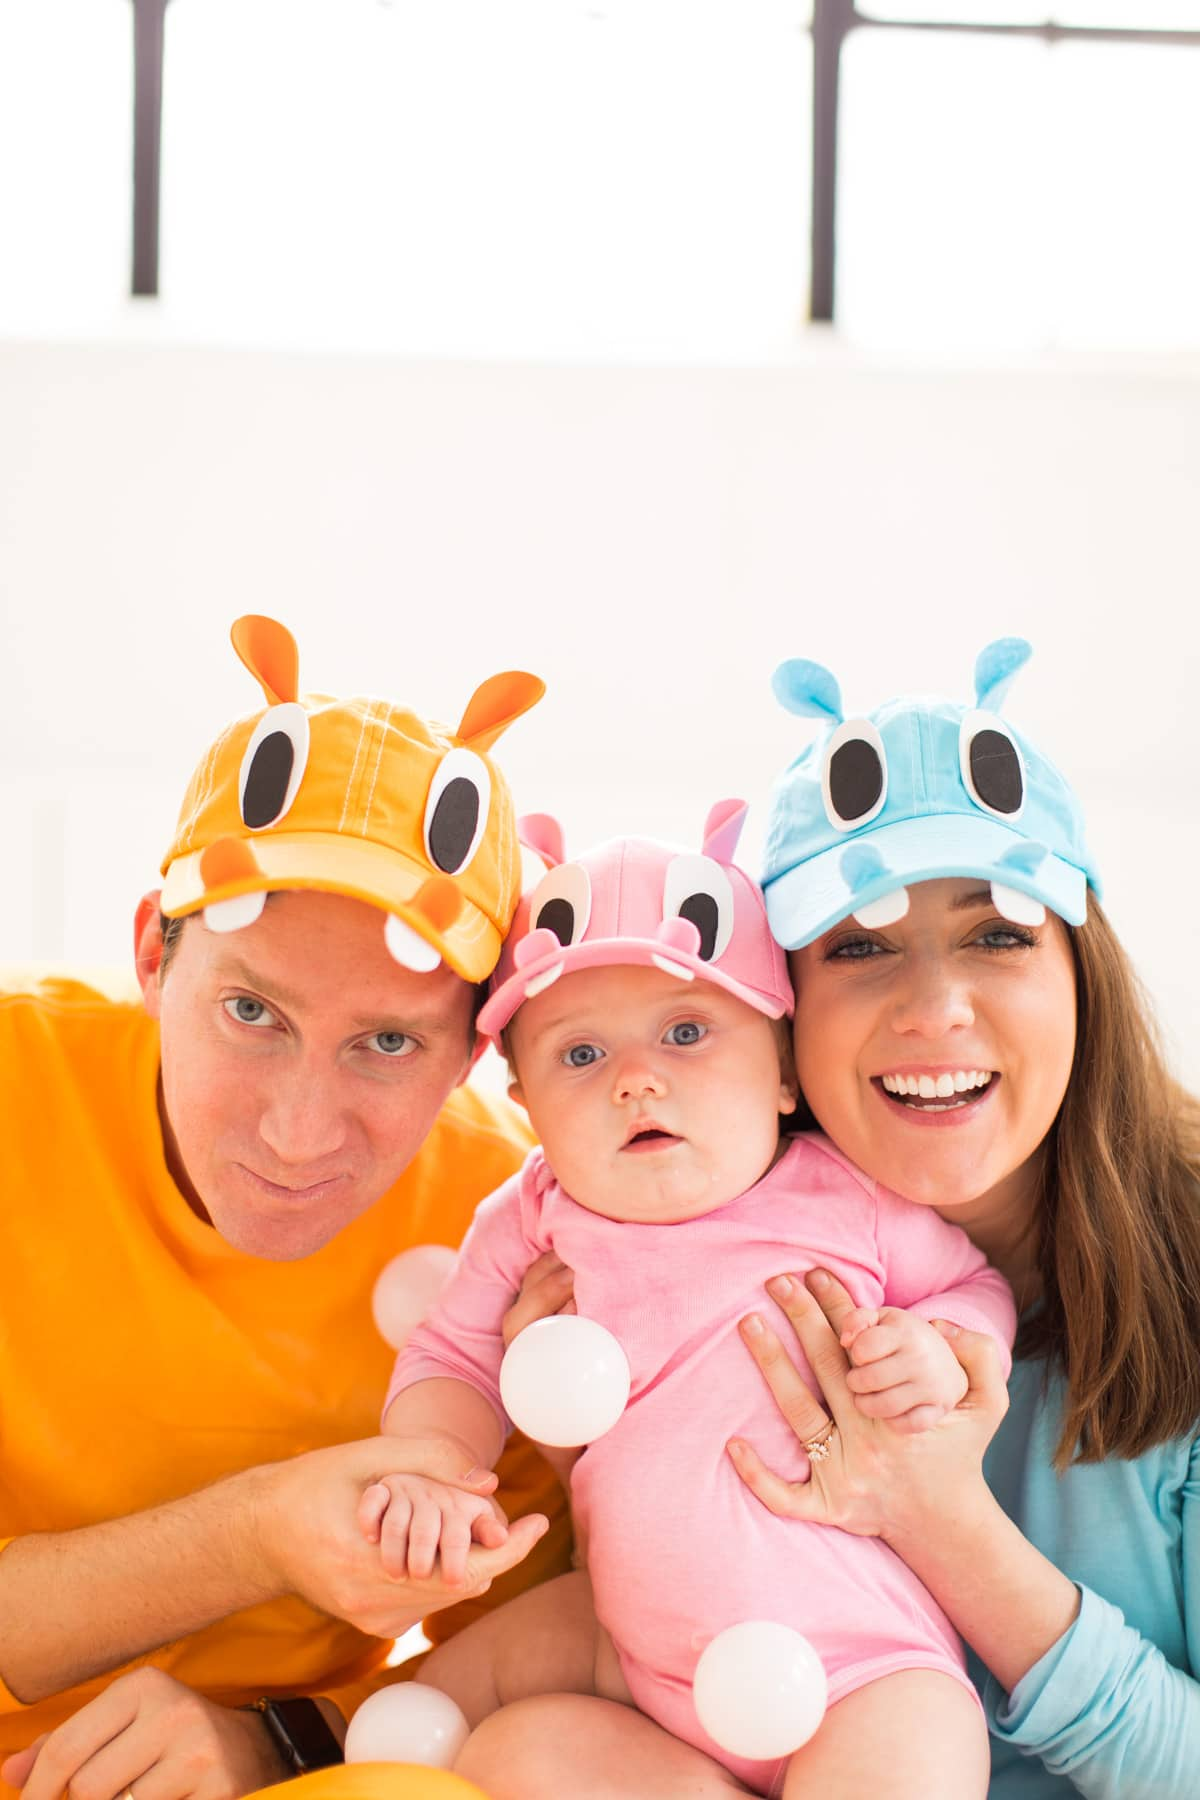 the full hippo gang! loading up the crazy amount of baby gear! Our Family DIY Hungry Hippos Costume Idea -- by Top Houston blogger Ashley Rose of Sugar and Cloth -- #costumes #halloween #ideas #family #familycostume #diy